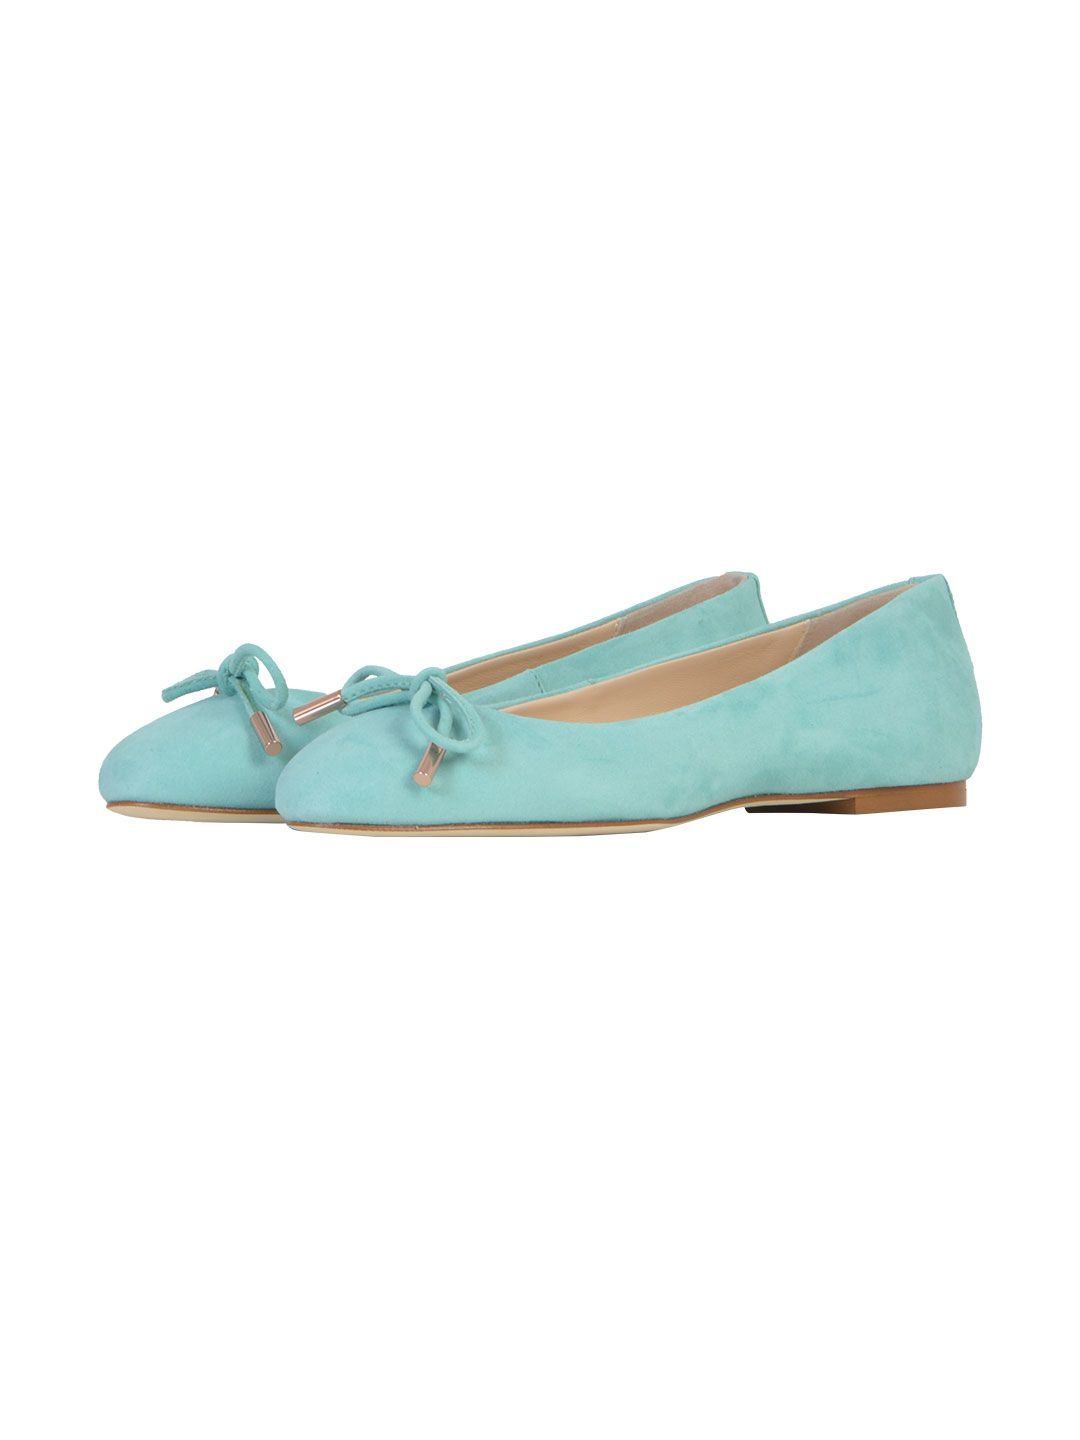 Discount Store ANNA BAIGUERA Sueded Ballerina Online Cheap Authentic Free Shipping Authentic Sale 2018 Newest Store Sale Online Ql93AtT3